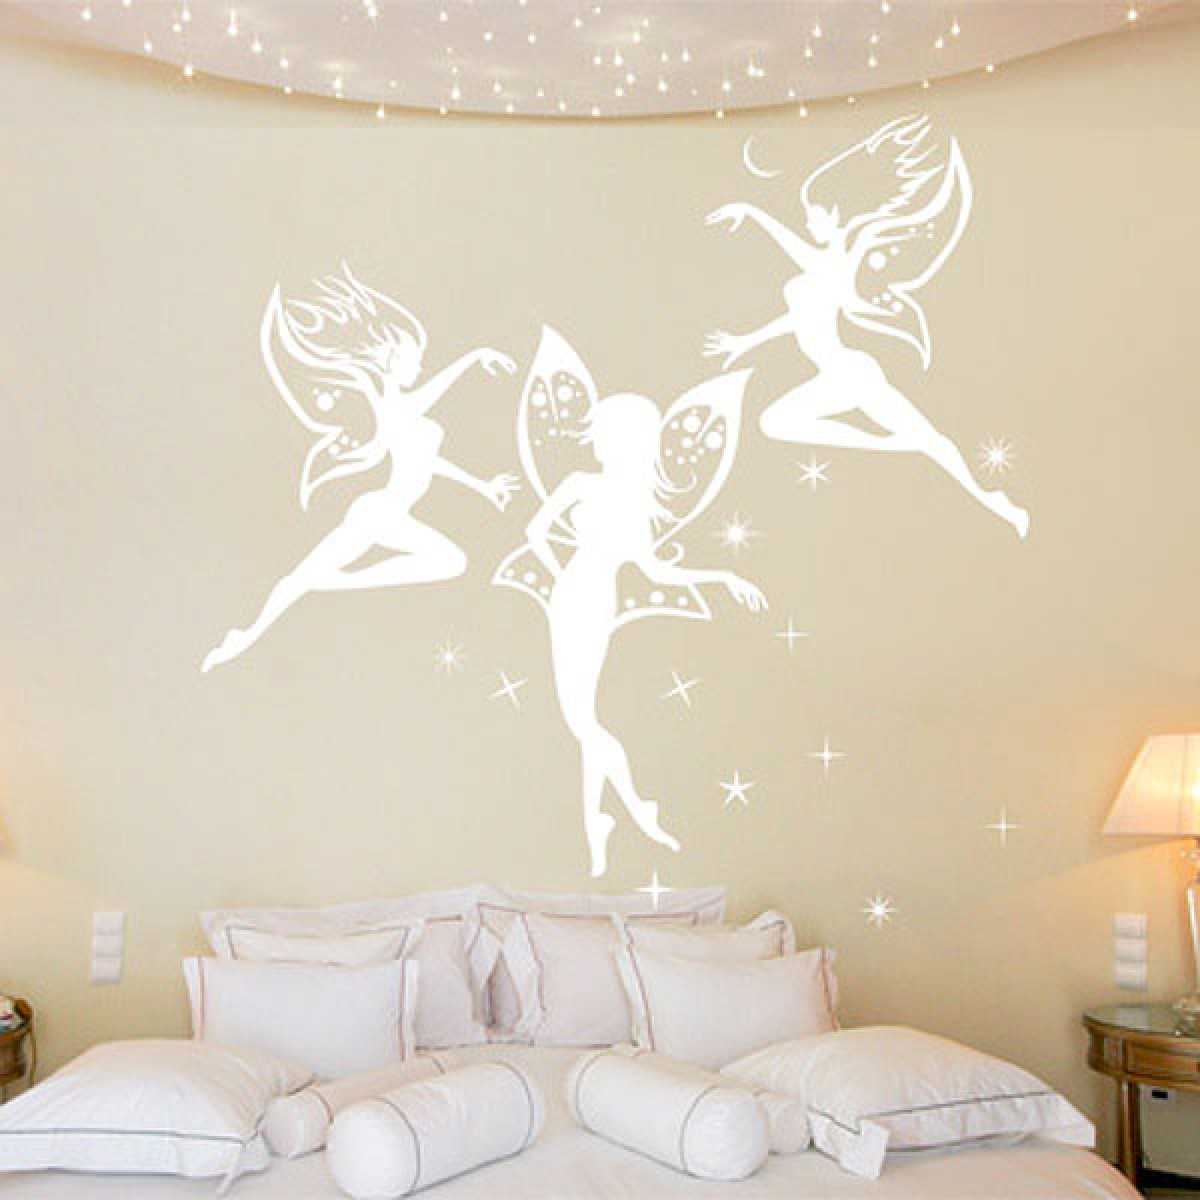 Magic fairy wall sticker large childrens wall decal dancing fairies wall sticker amipublicfo Gallery